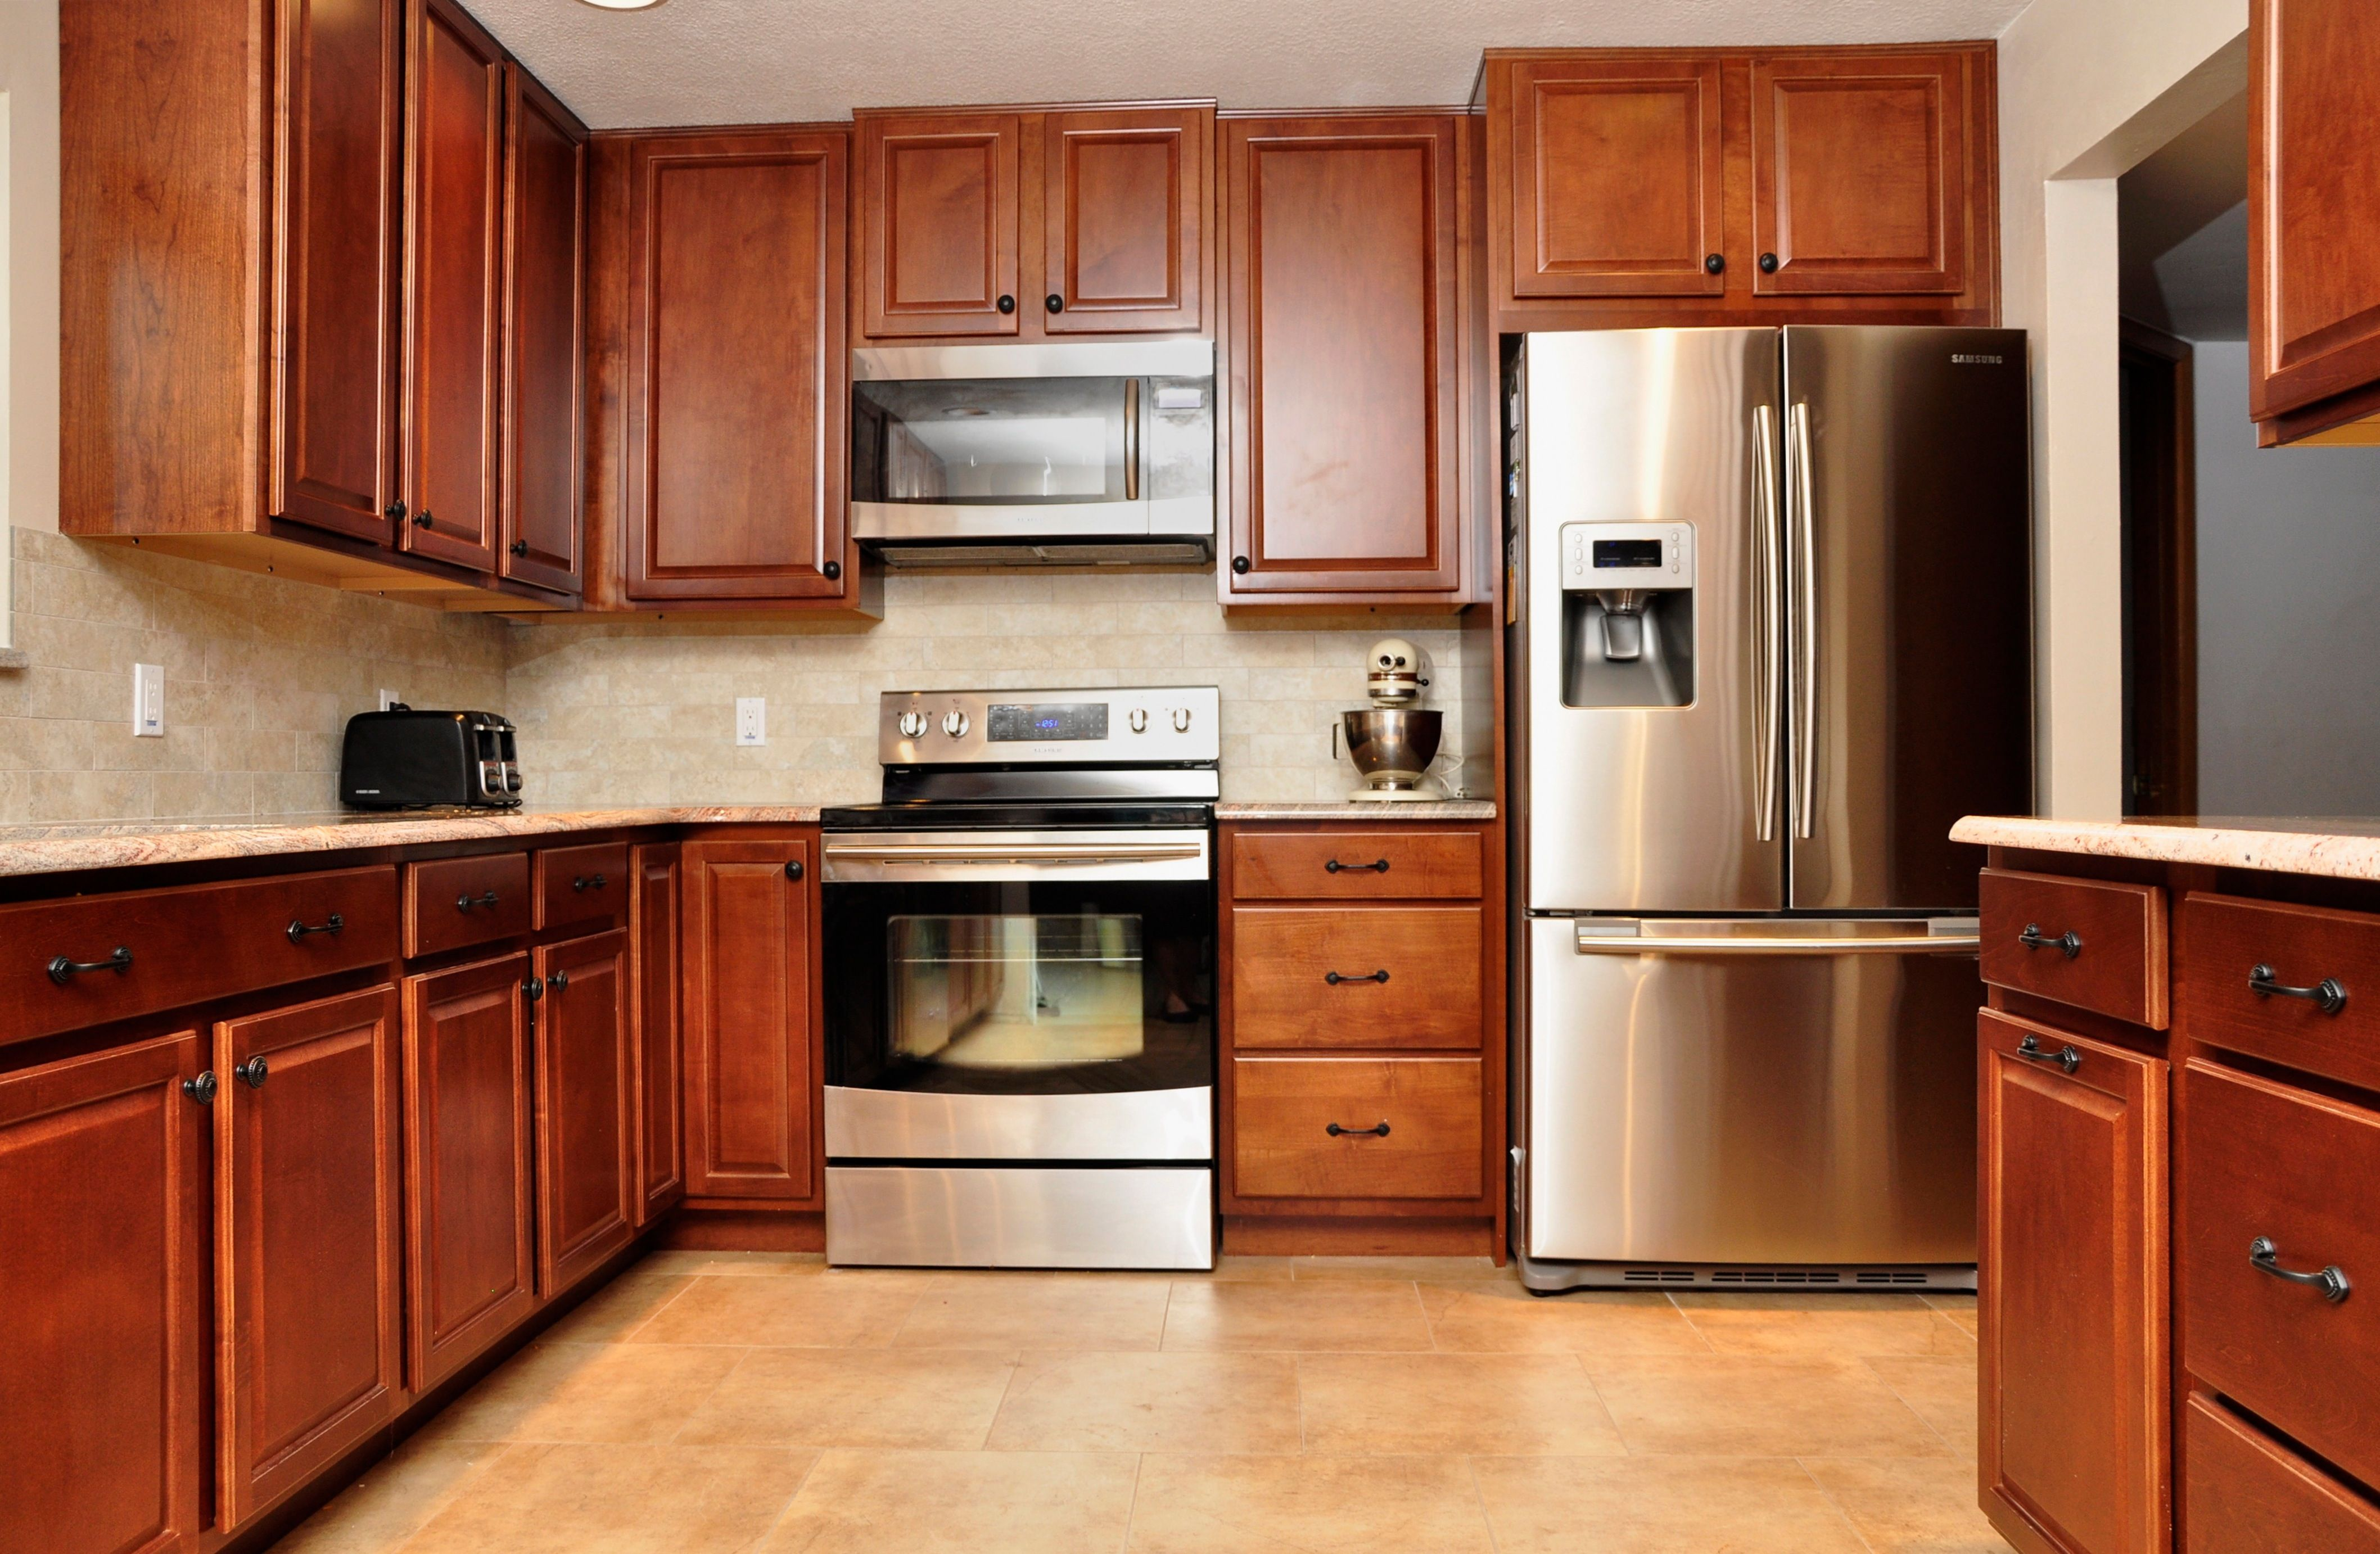 high gloss faux wood block counters dark cherry cabinets stainless steel appliances full on kitchen remodel appliances id=30670